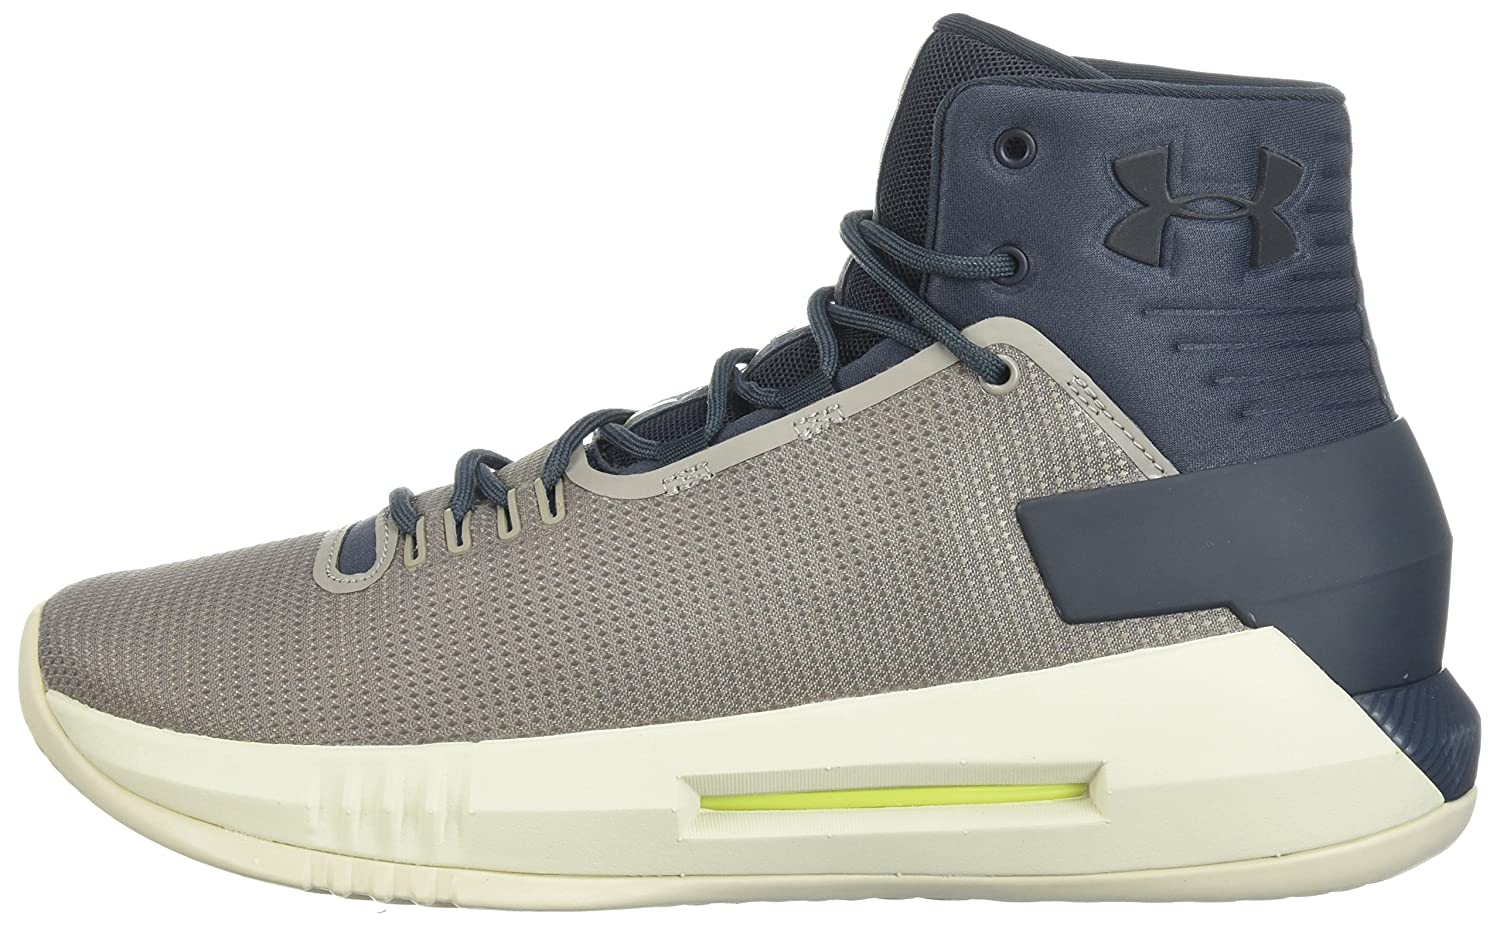 Man's/Woman's Under Armour Men's Drive 4 Basketball Shoe renewed Modern technology New design renewed Shoe on time RW25209 a165b1